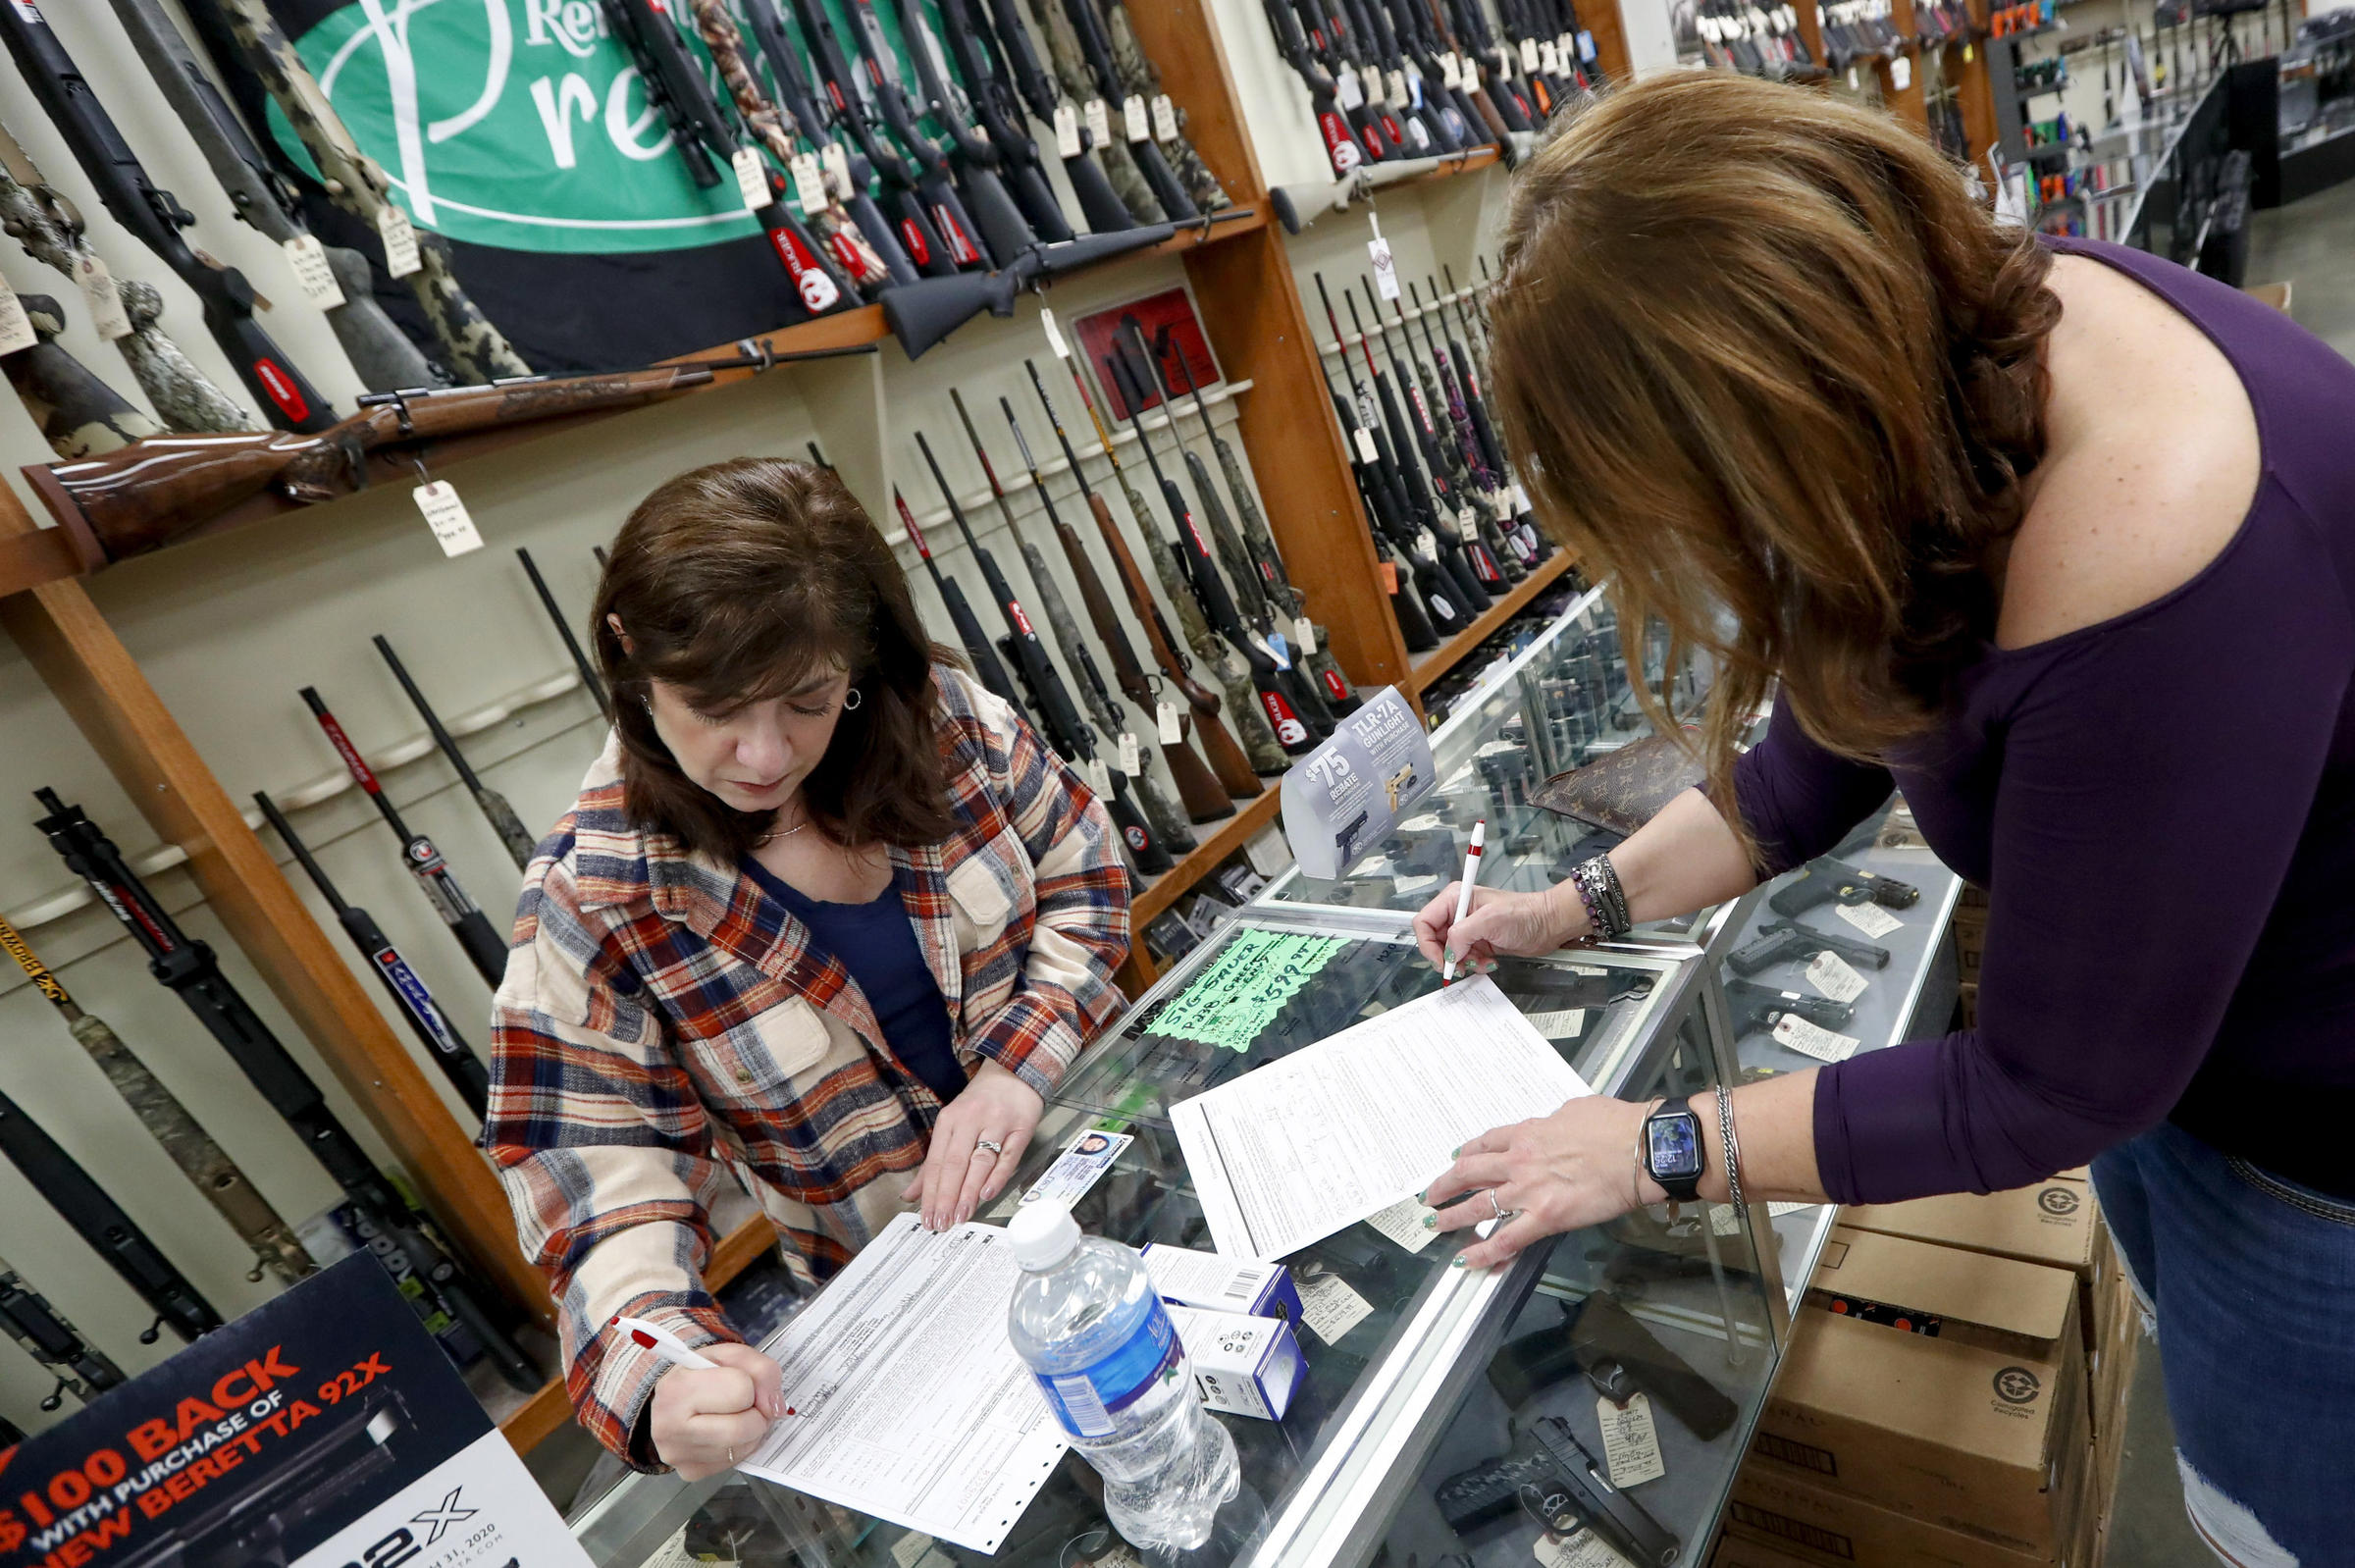 Gun Industry Gets Essential Designation, To Remain Open During Coronavirus Shutdowns